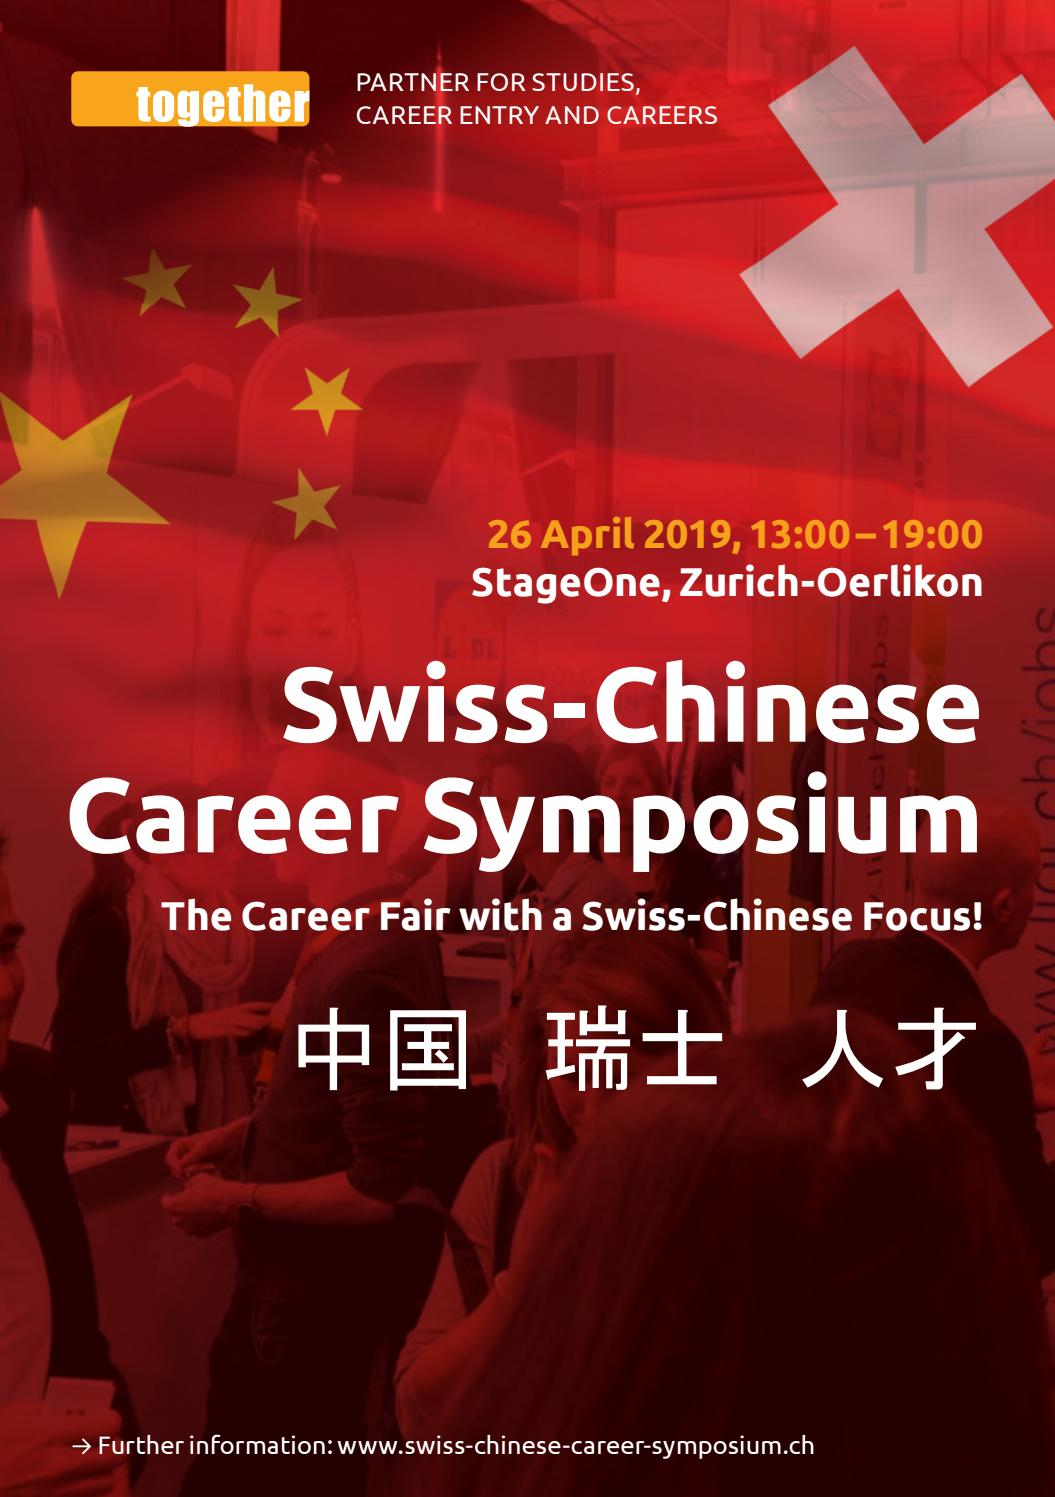 Swiss-Chinese Career Symposium 2019 by together ag - issuu